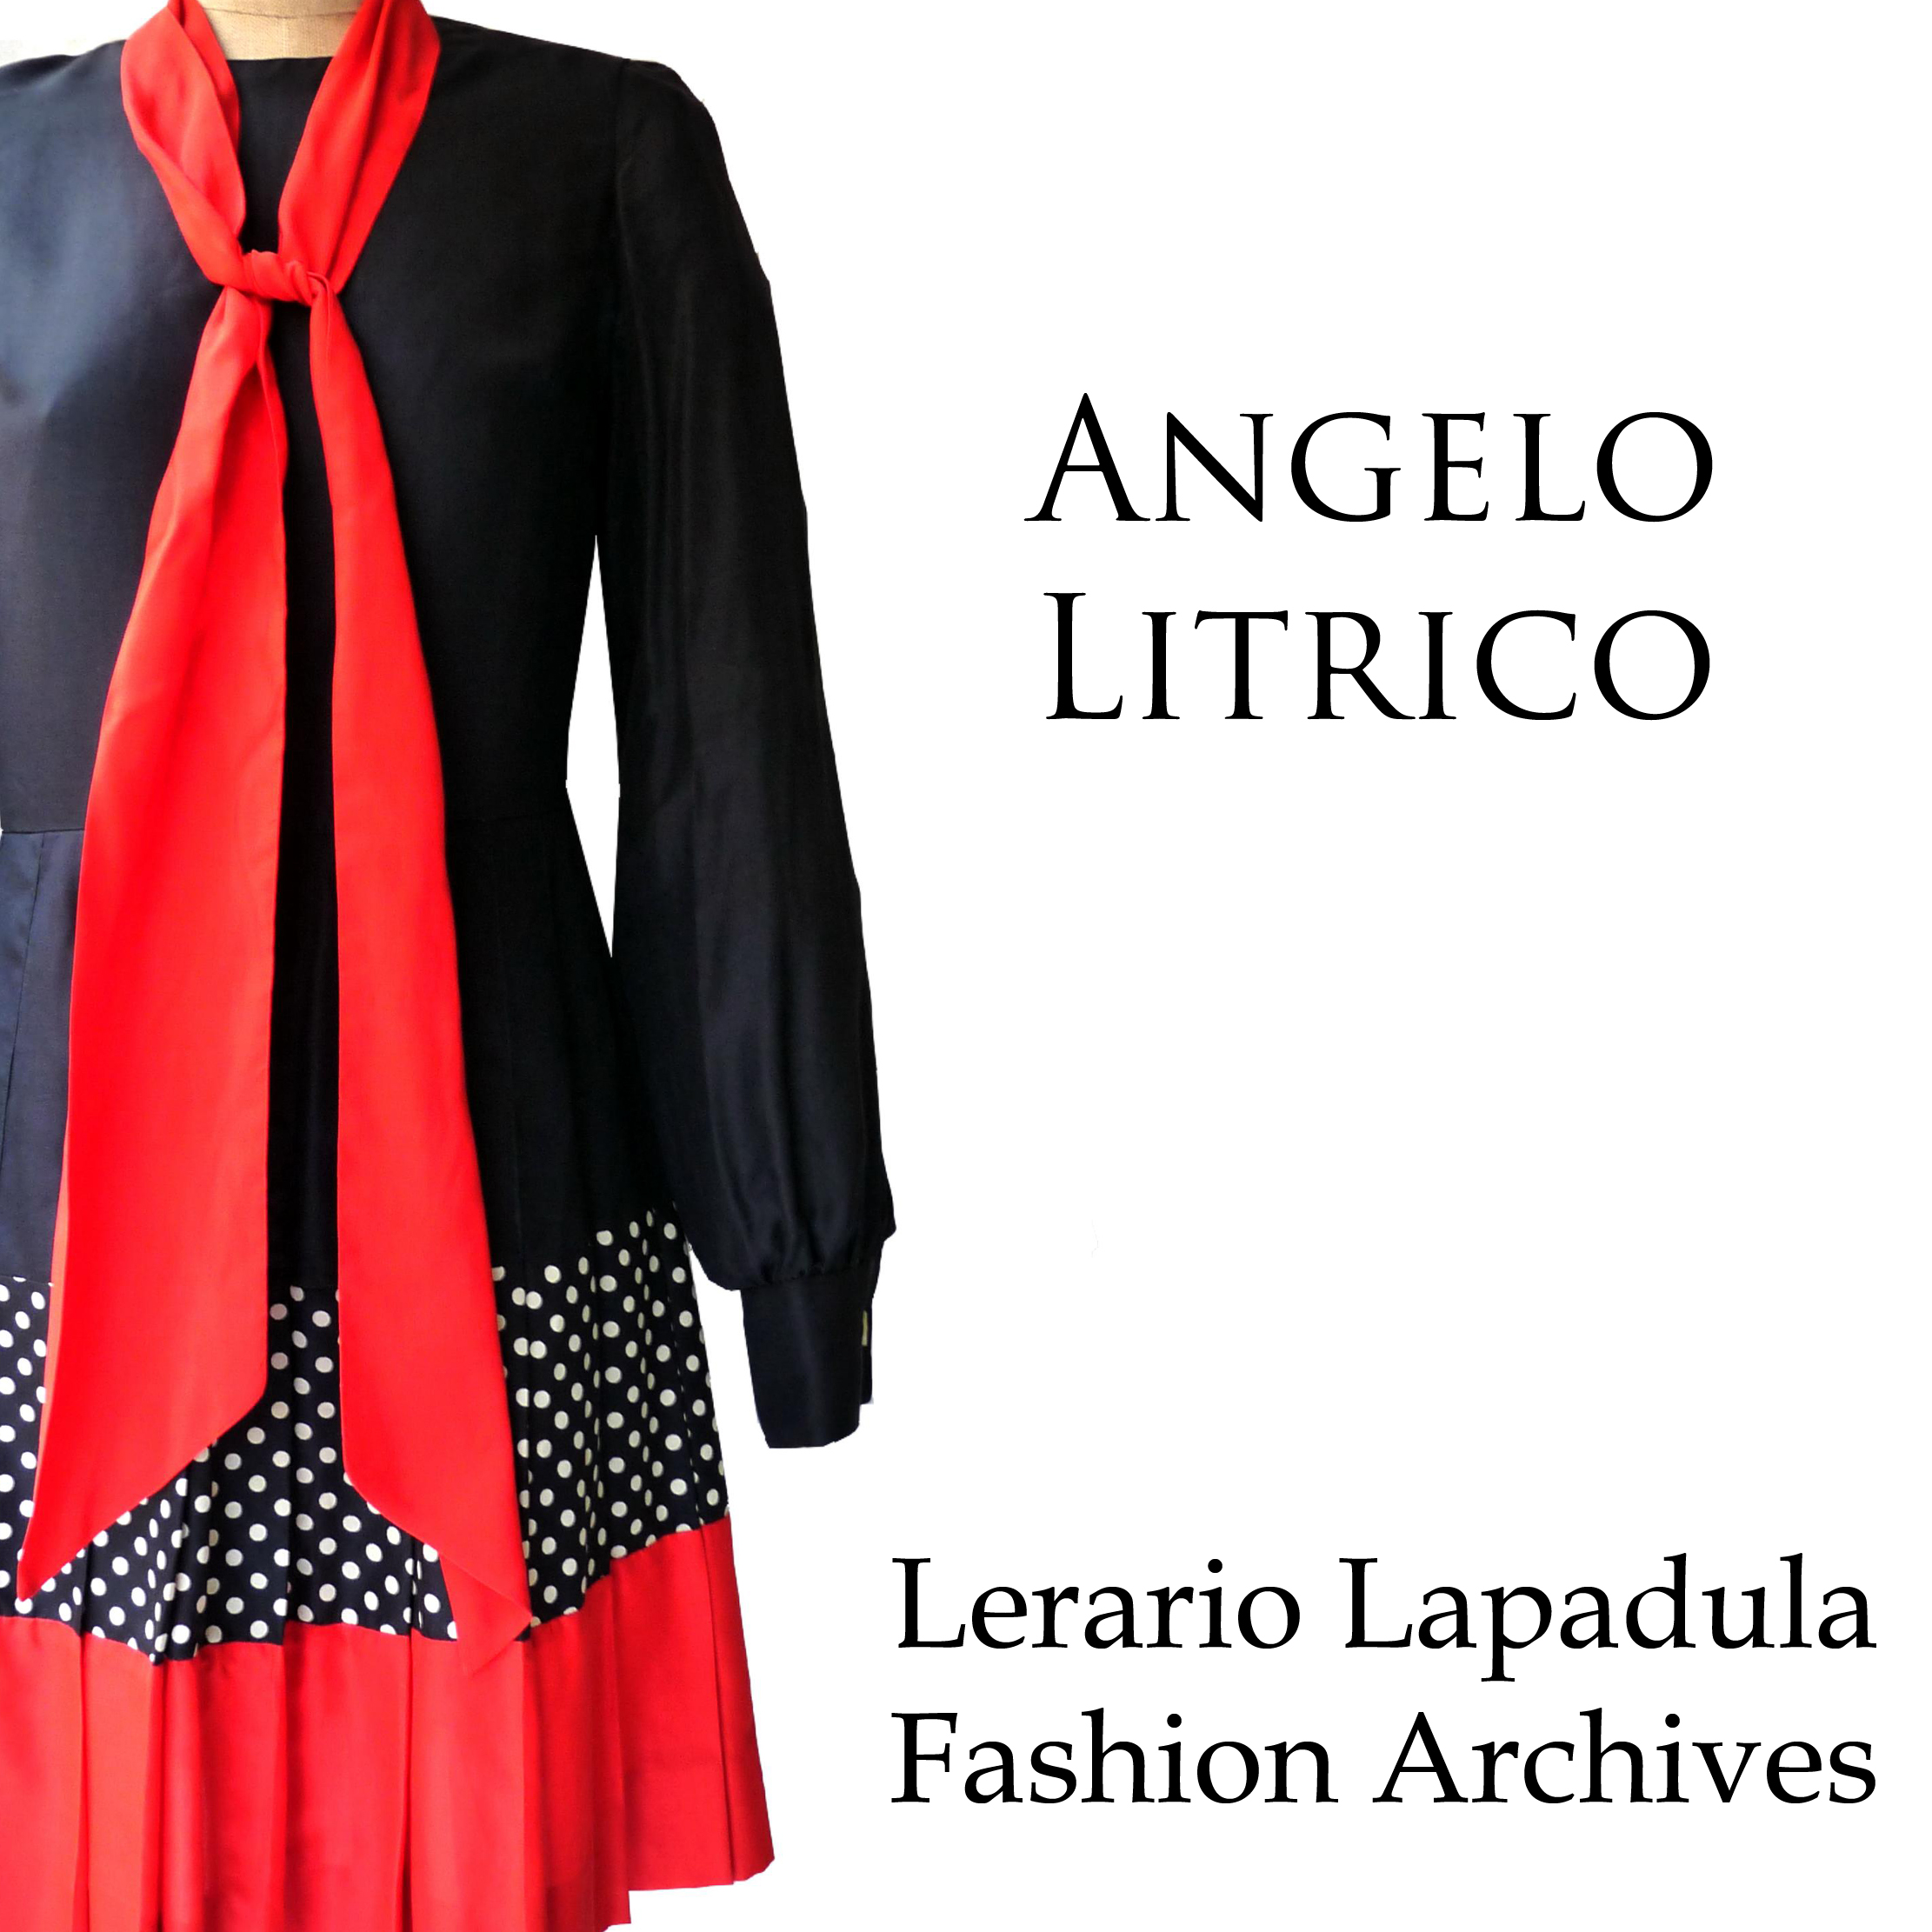 angelo-litrico-lerario-lapadula-fashion-archives